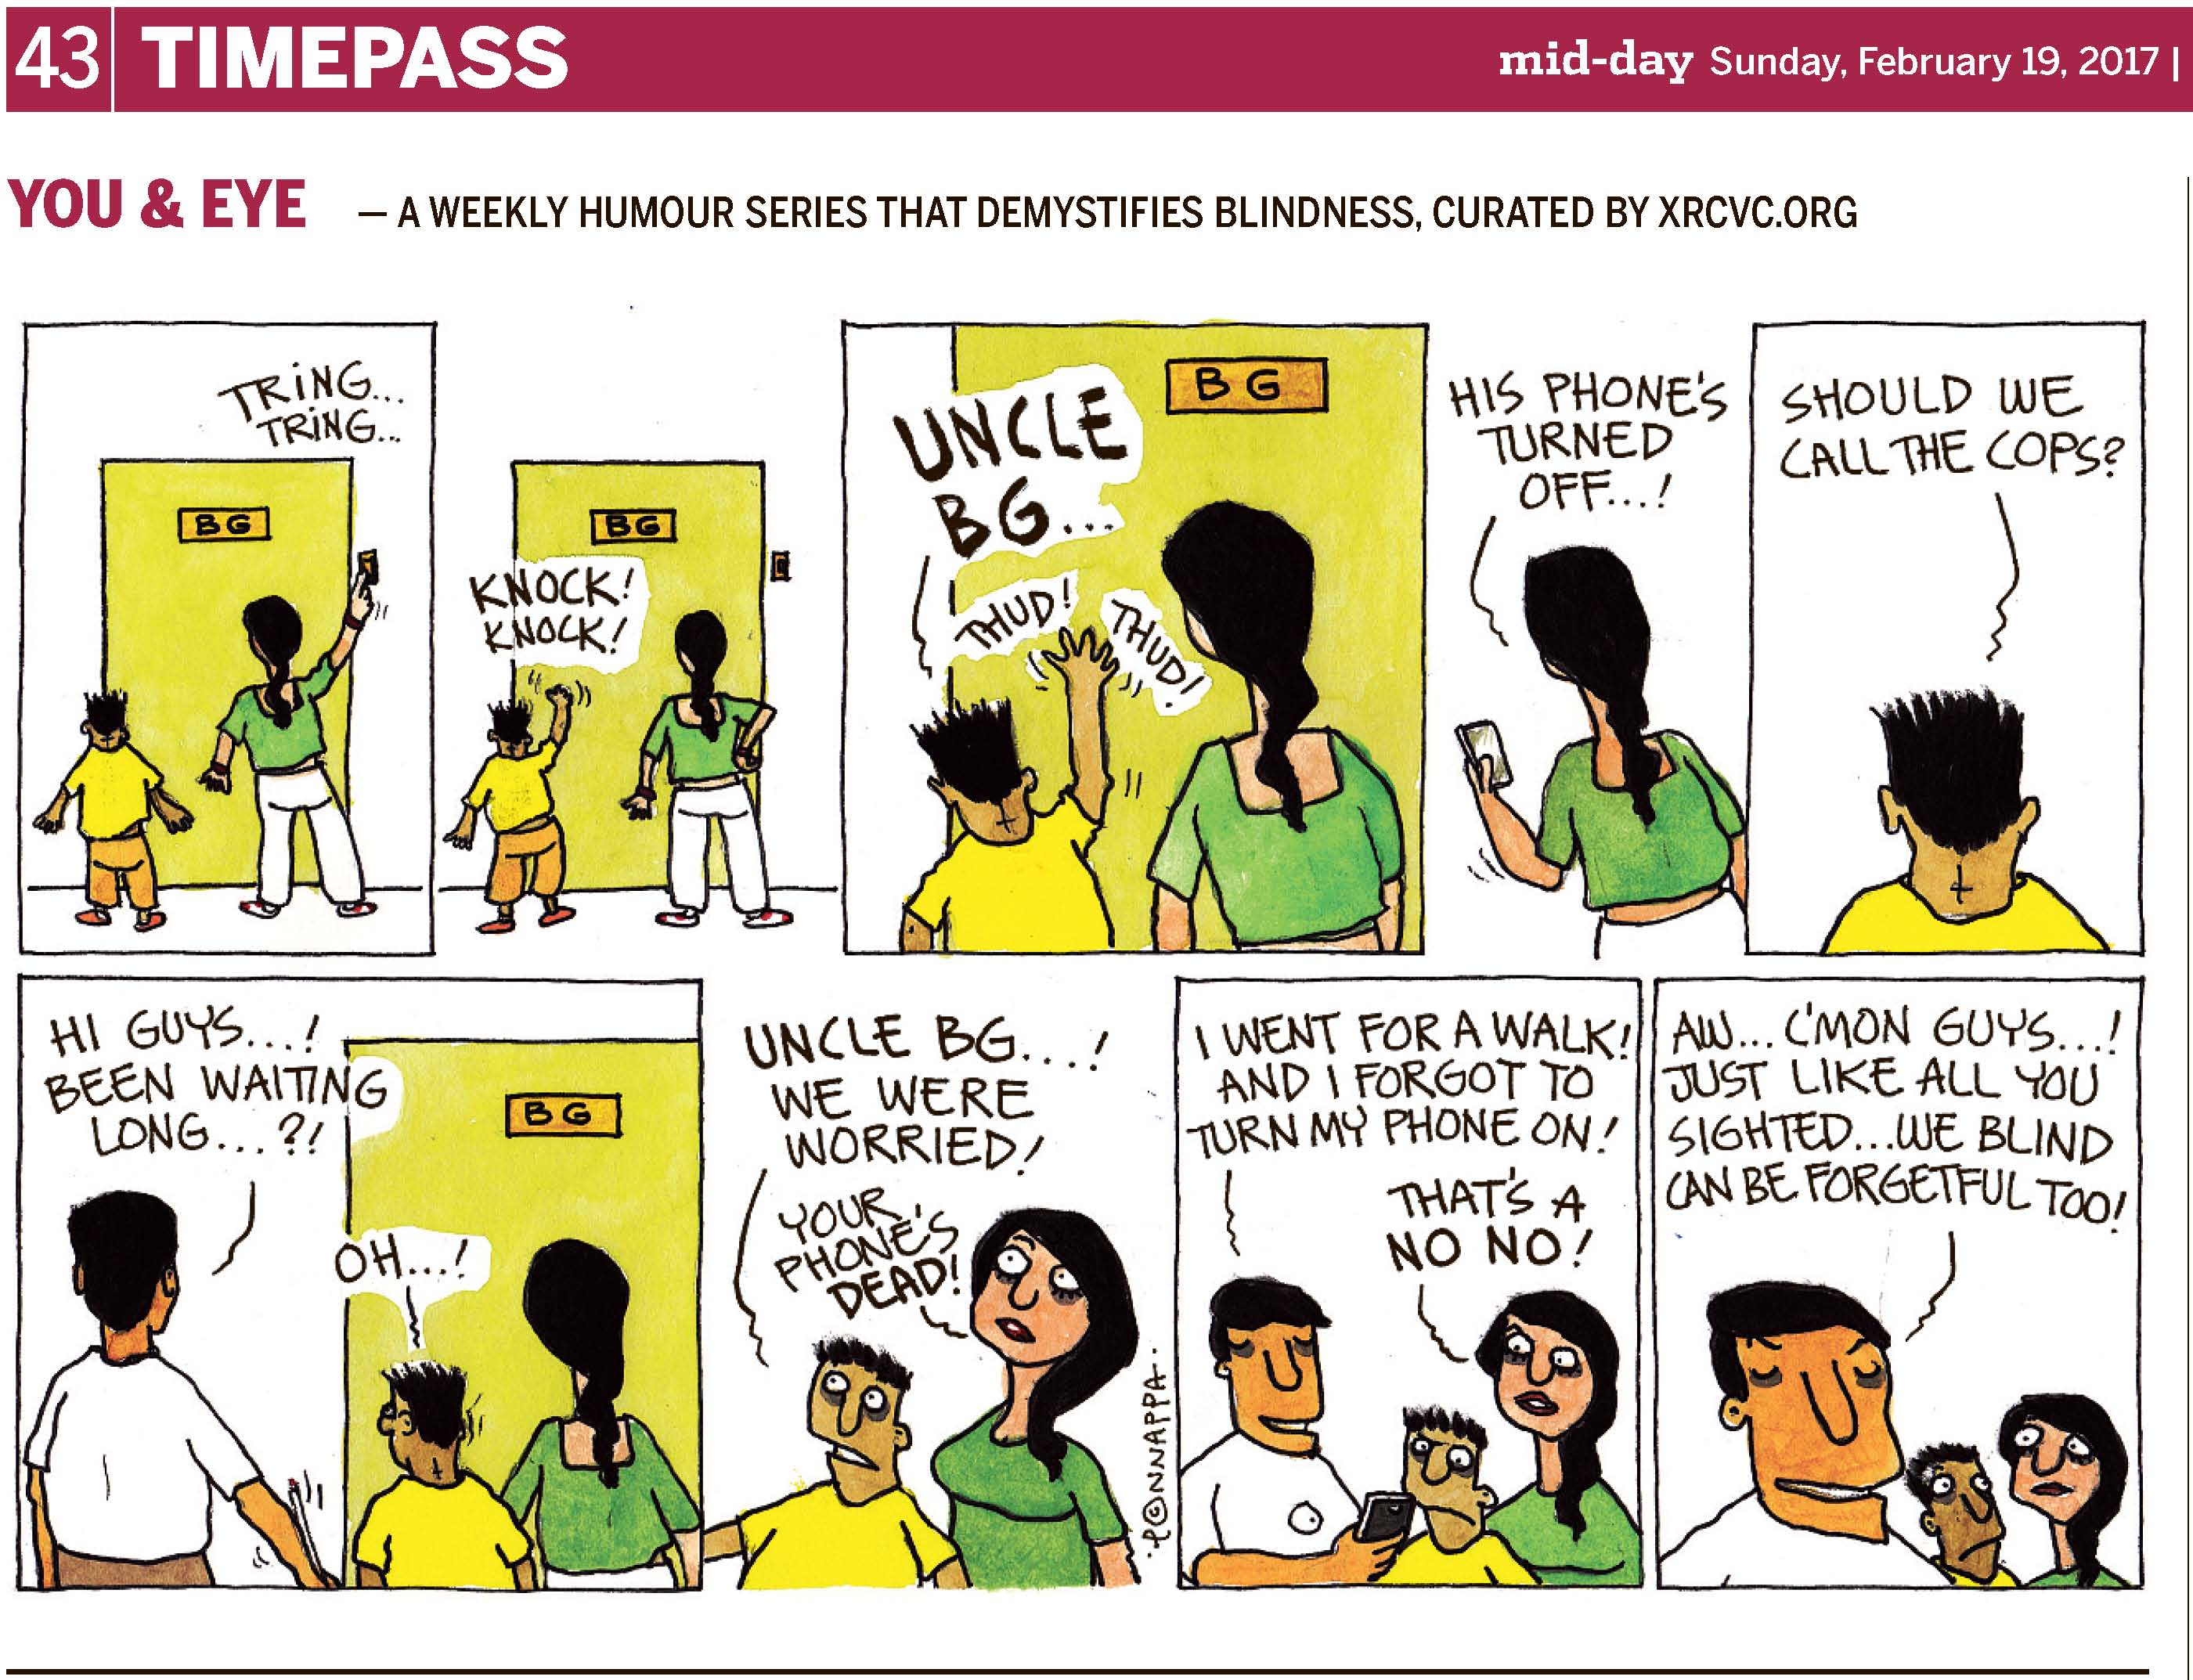 (top-left) 43 | TIMEPASS (top-right) mid-day Sunday, February 19, 2017 YOU & EYE – A WEEKLY HUMOUR SERIES THAT DEMYSTIFIES BLINDNESS, CURATED BY XRCVC.ORG Image description: A cartoon strip with 9 frames… Frame 1: (A boy and a woman – possibly Pintu and Tippy – are seen from the back facing a closed door which has a name plate with BG on it. Tippy rings the bell with her right hand. The sound of the bell is represented by the words TRING… TRING…) Frame 2: (Pintu now knocks at the door while Tippy rests her right hand on her hip. The words KNOCK! KNOCK! are seen to represent the sound.) Frame 3: (A close-up of Pintu banging the door while Tippy stands nearby; the sound of the bang is represented by the words THUD! THUD!) Pintu: Uncle BG… Frame 4: (A close-up of Tippy seen from the back holding a mobile phone in her left hand)